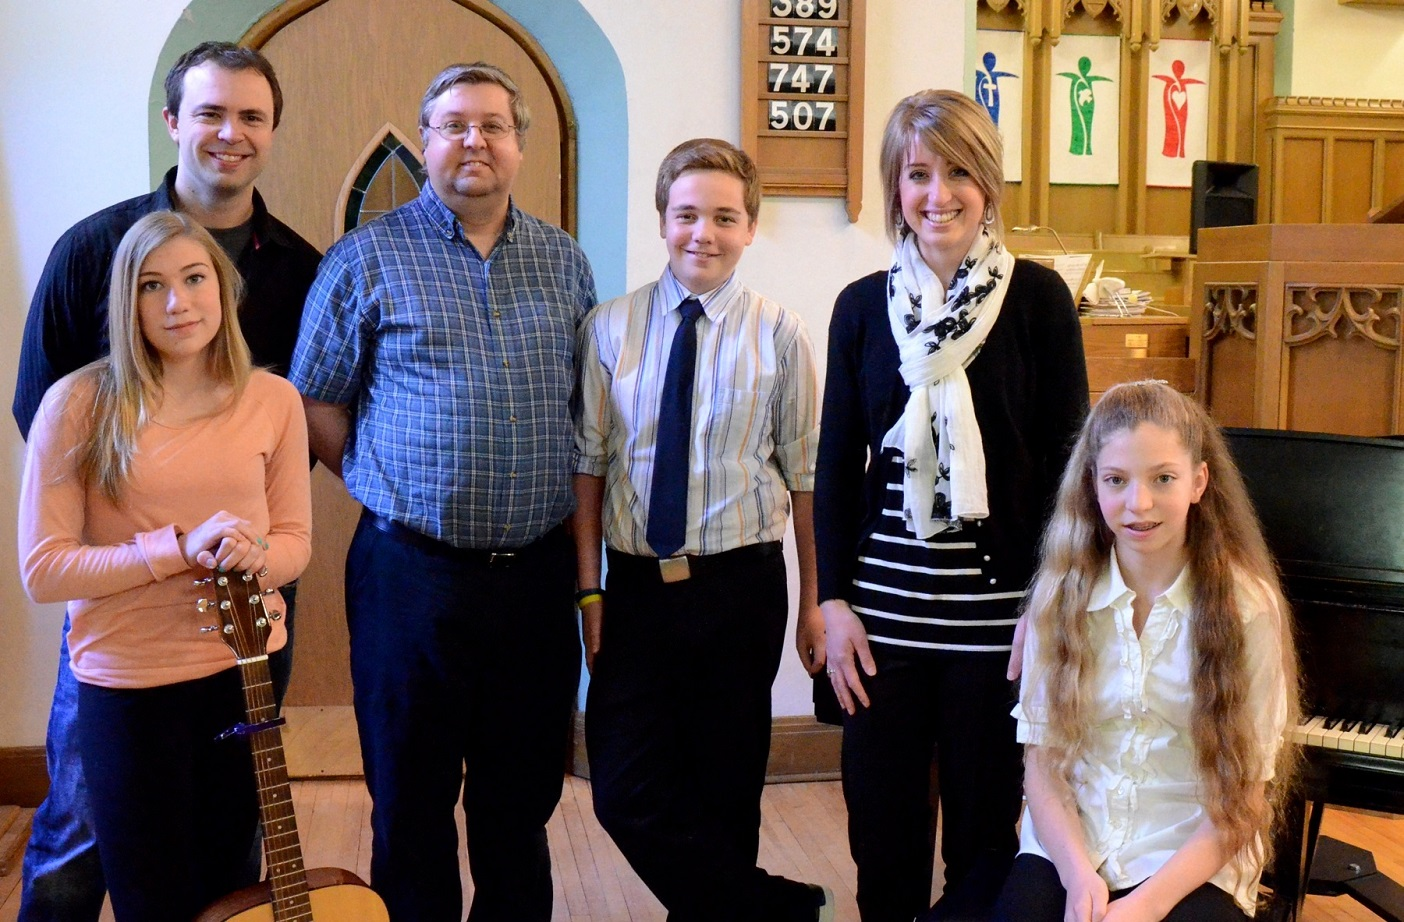 These students each received a music bursary from the Concert Association of Huntsville for lessons from September 2014 to June 2015. (from left) guitar student Tianna Fraser with her teacher Tobin Spring, piano student Luke Asher-Murphy with his teacher Roger King, piano student Victoria Langfeld with her teacher Melissa Bradbury. CAH fundraisers and charitable donations made the program possible.